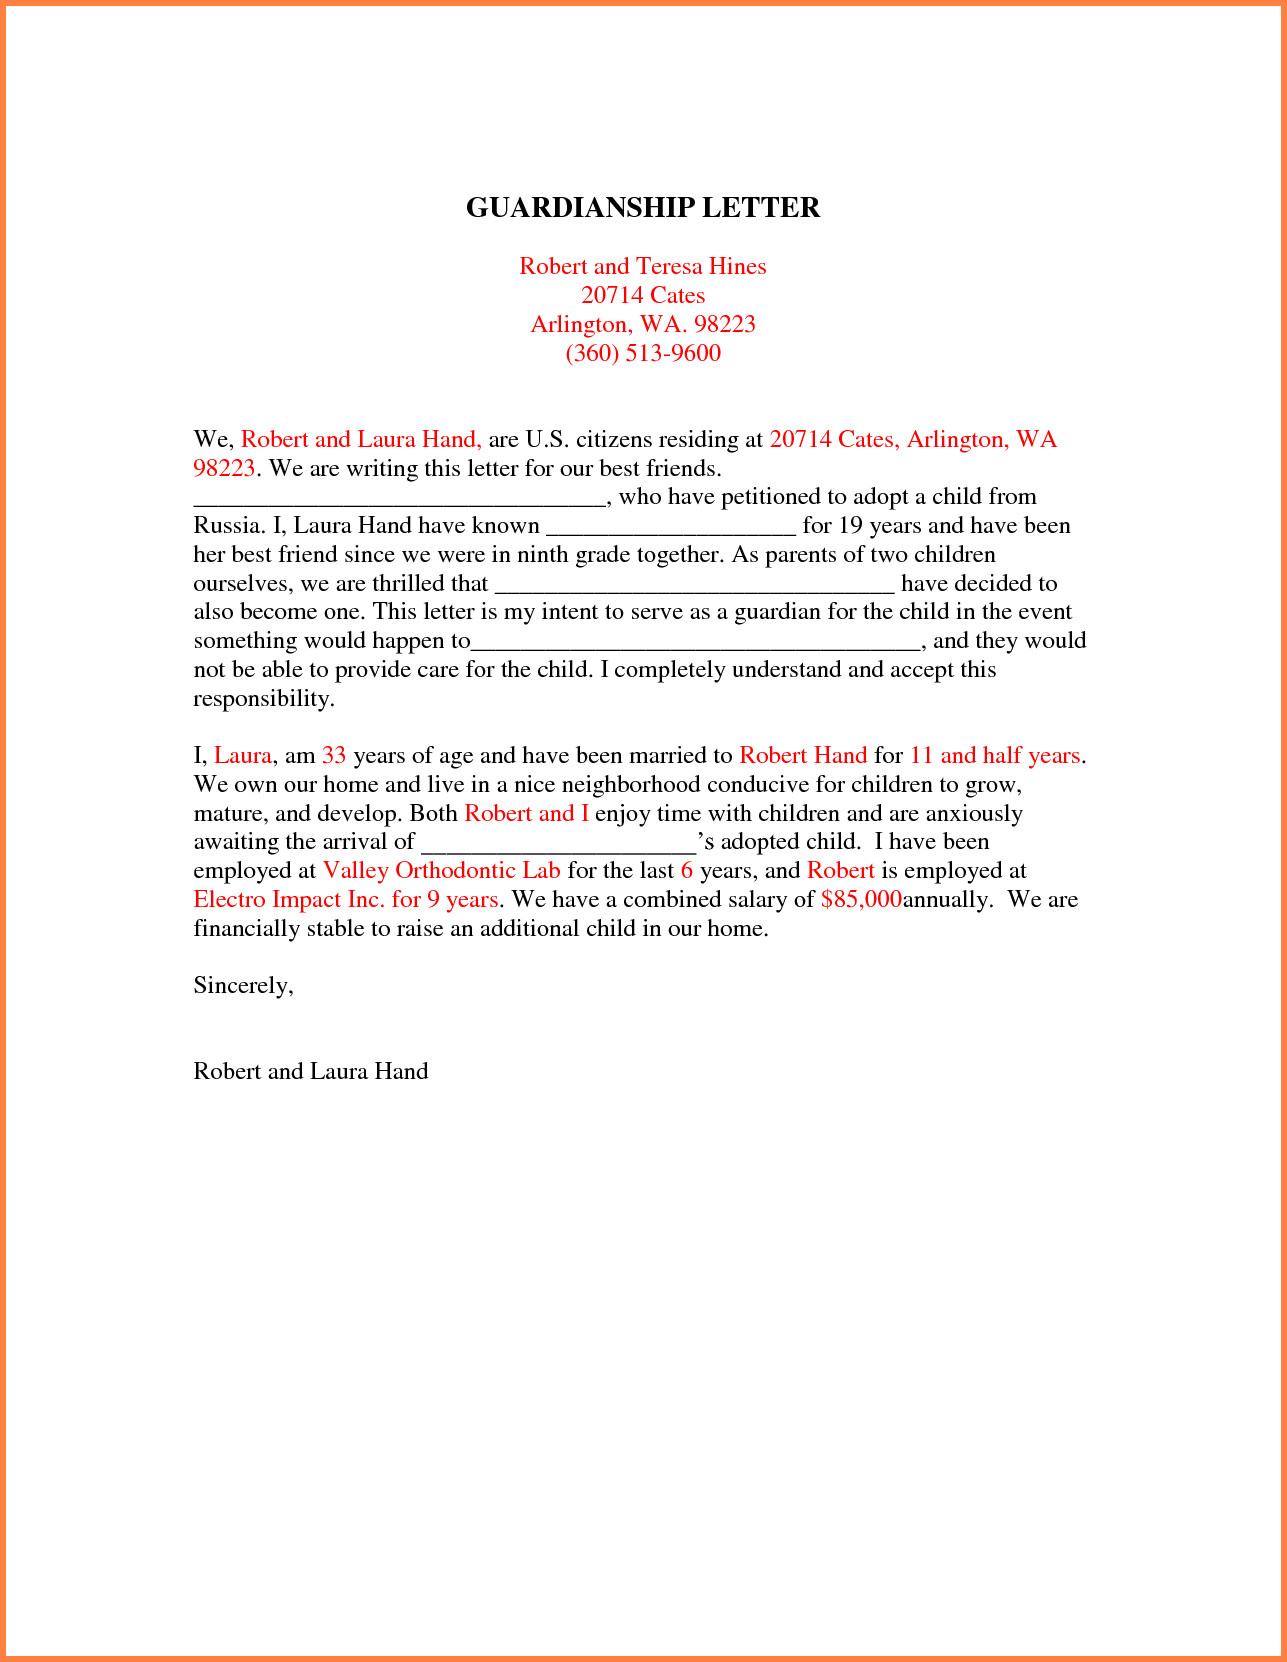 Temporary Guardianship Letter Template - Sample Guardianship Letter Inspirational Nice Temporary Guardianship